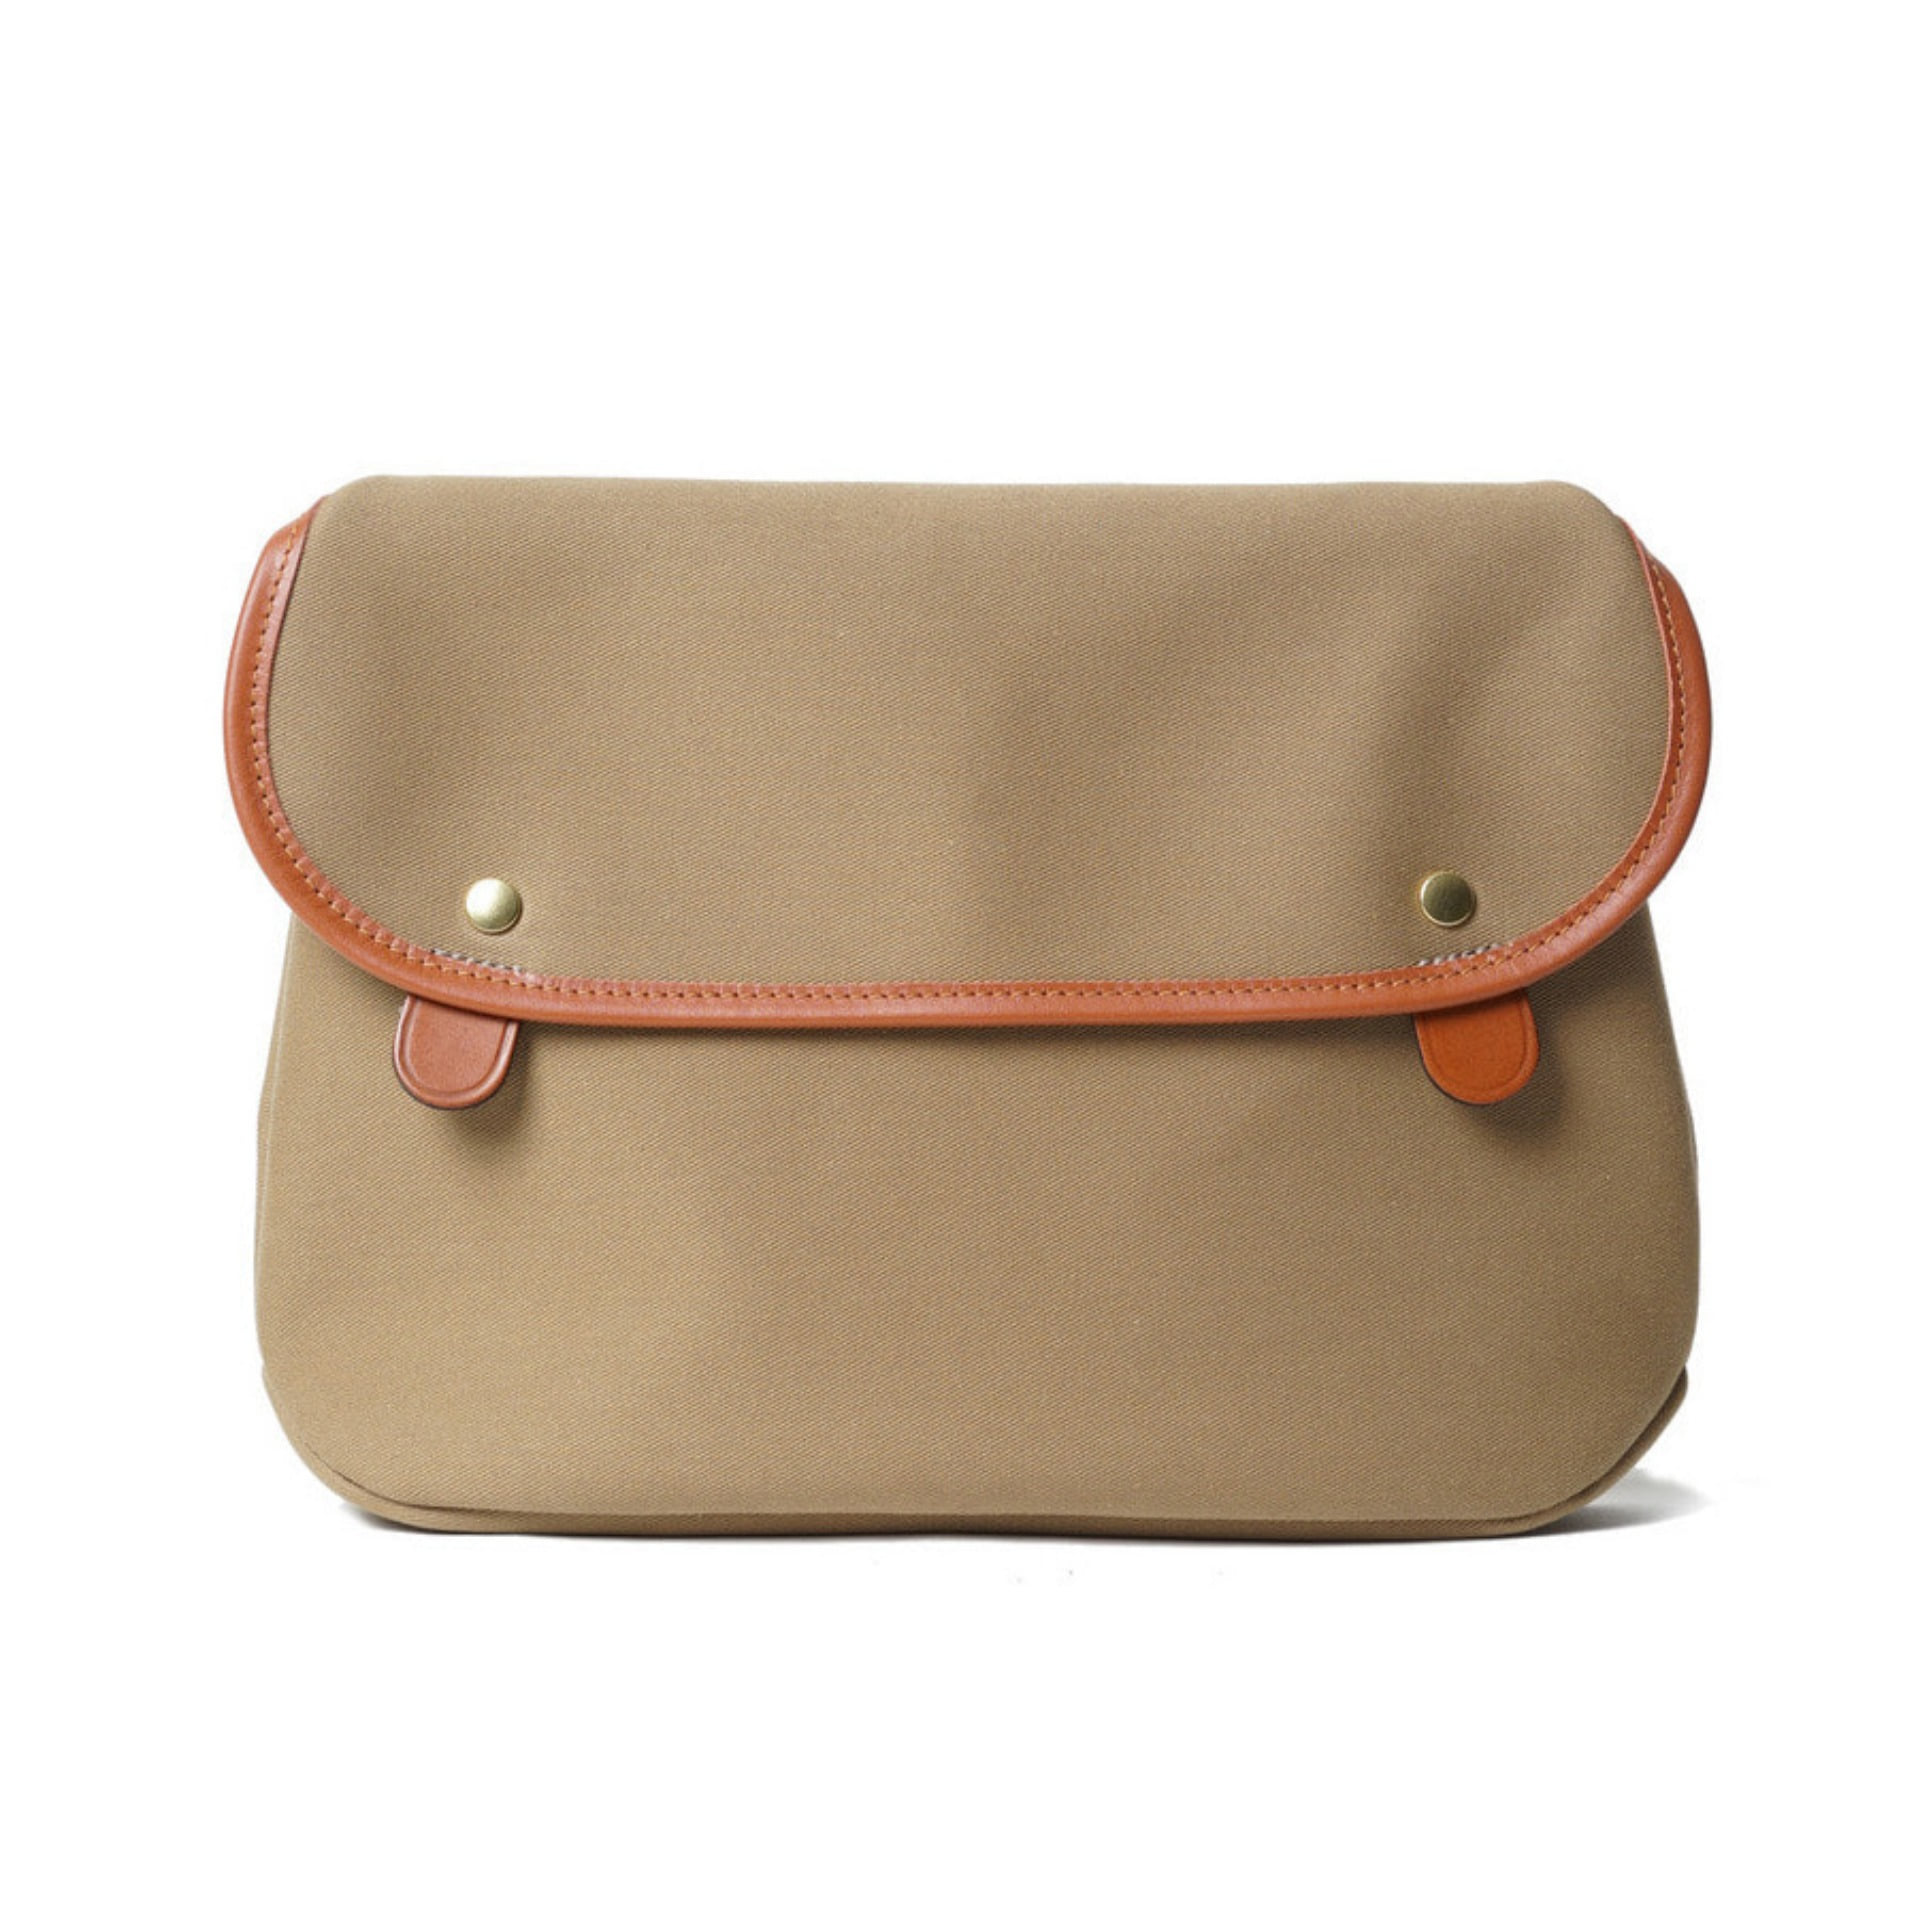 BRADY BAGS AVON Cross Bag (Khaki)